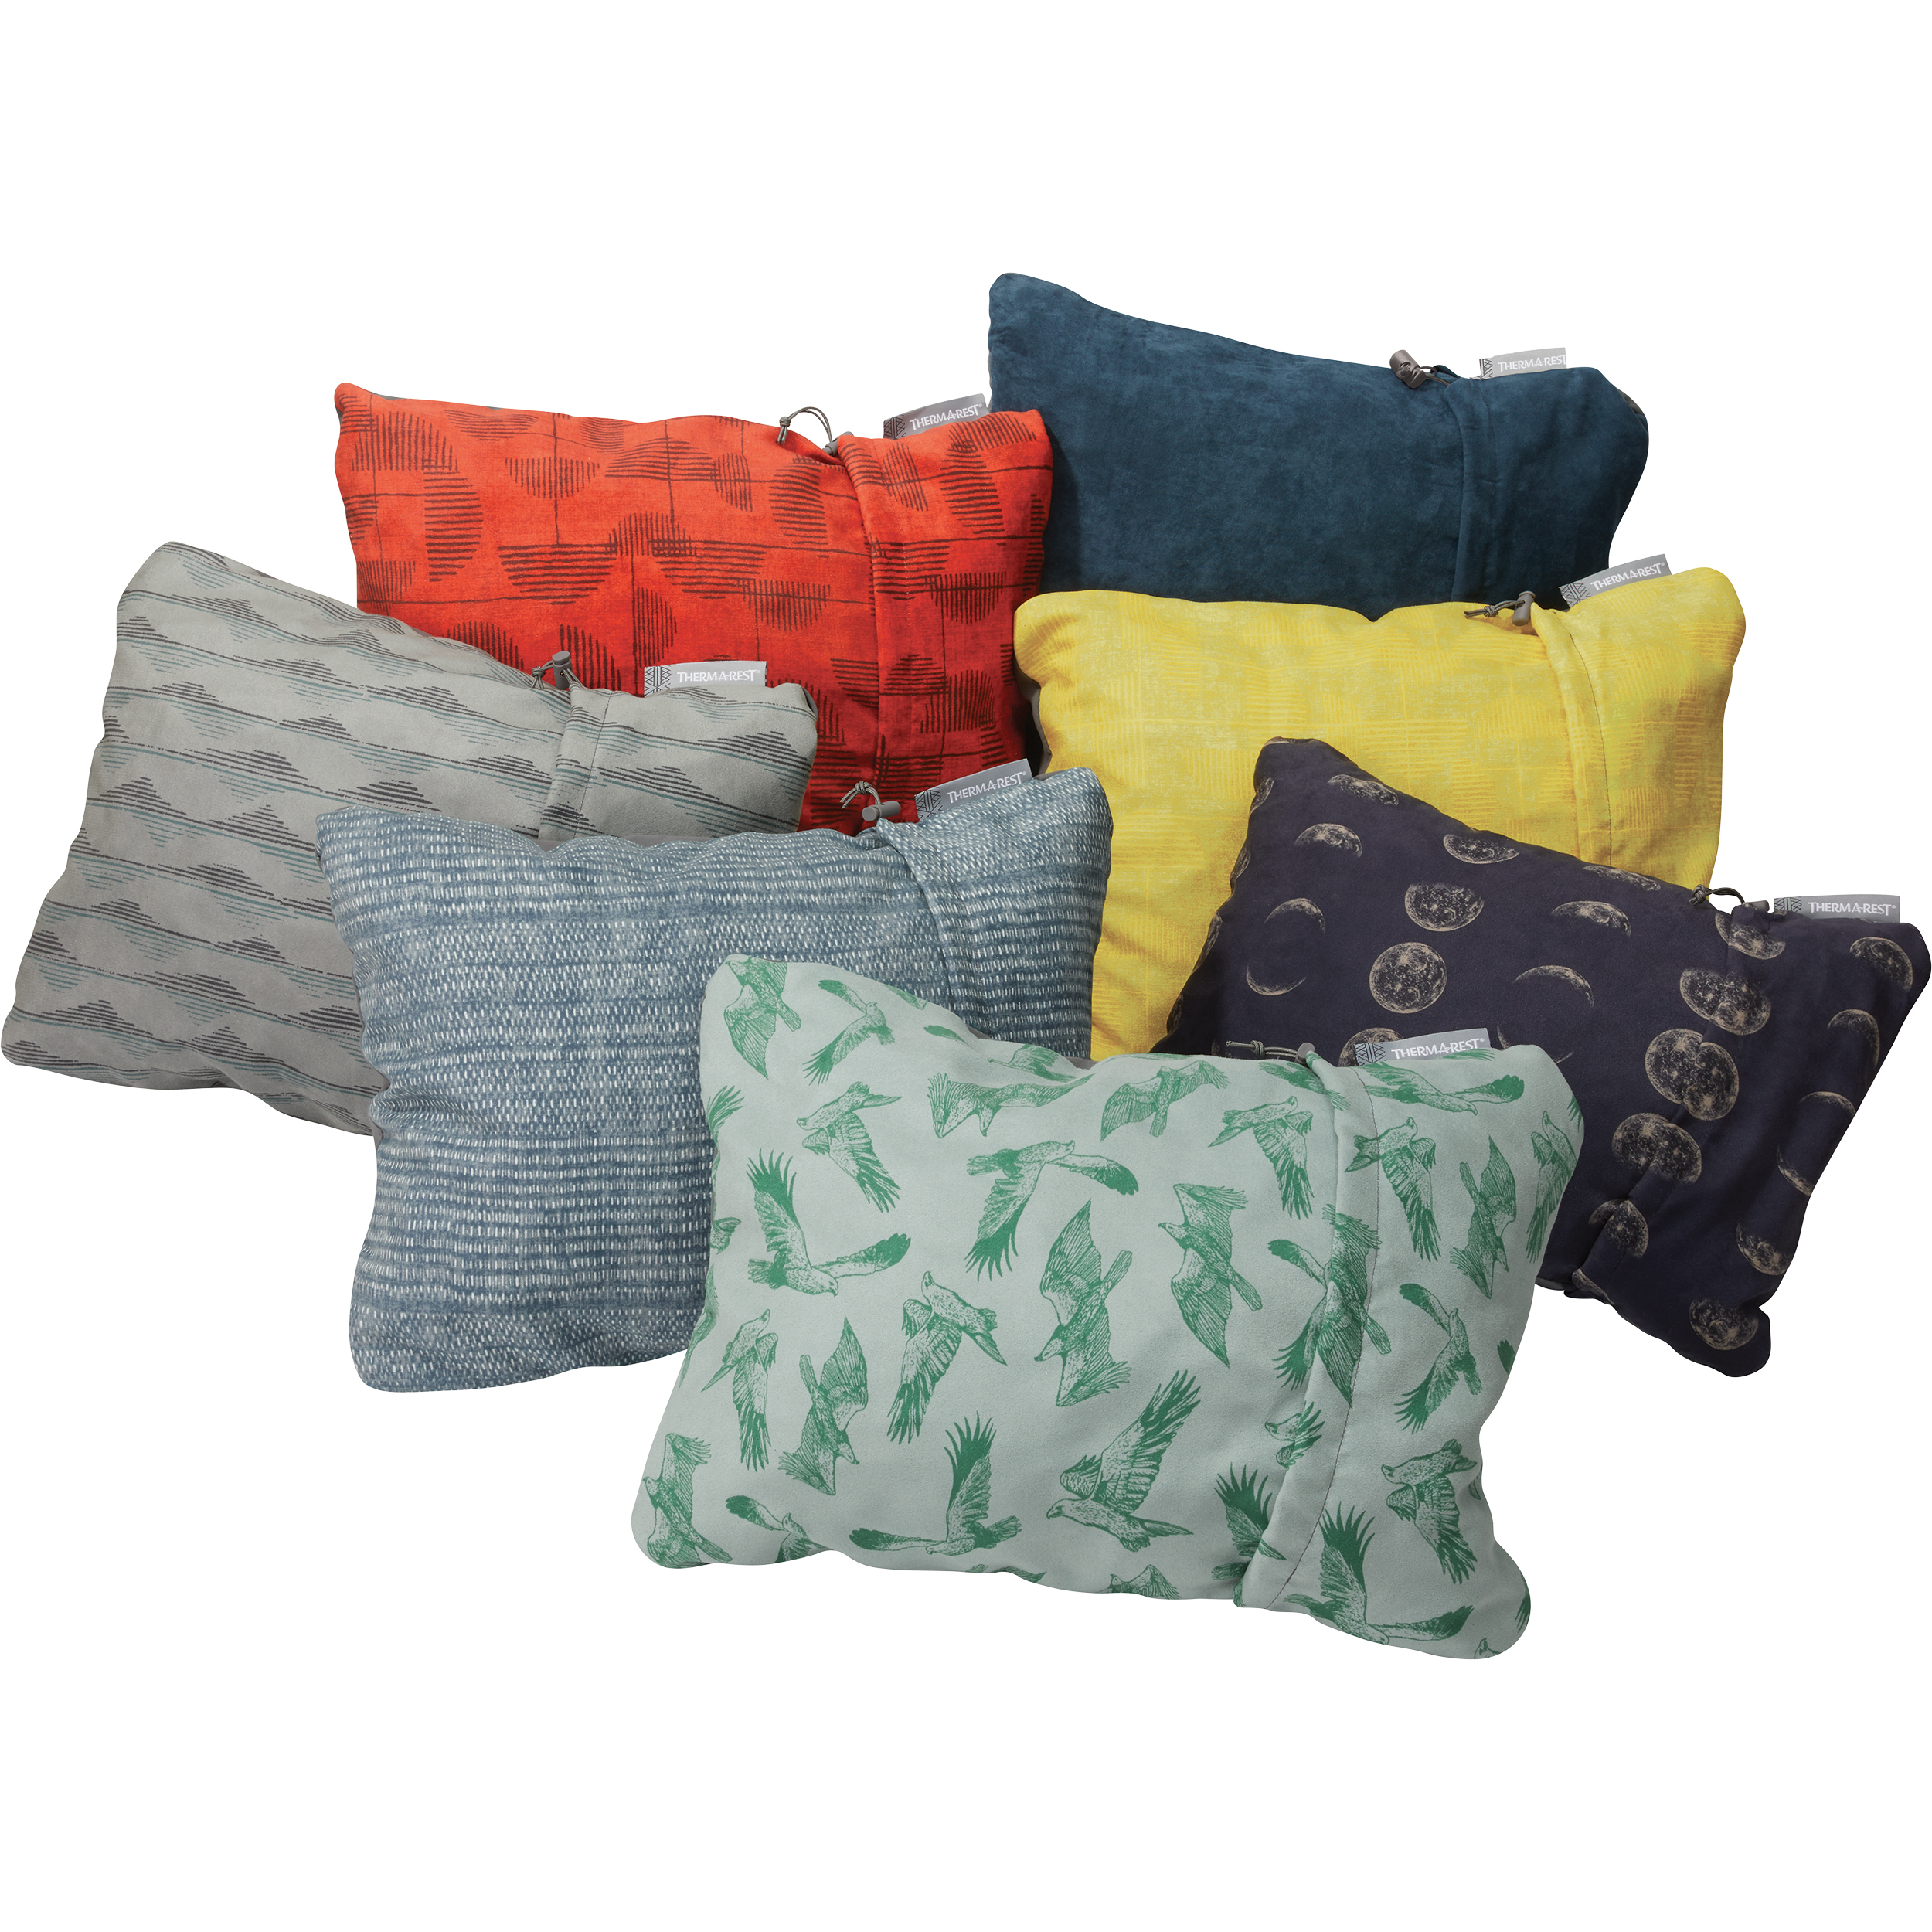 X-Large//16.5 x 27 Therm-A-Rest Compressible Pillow Cardinal